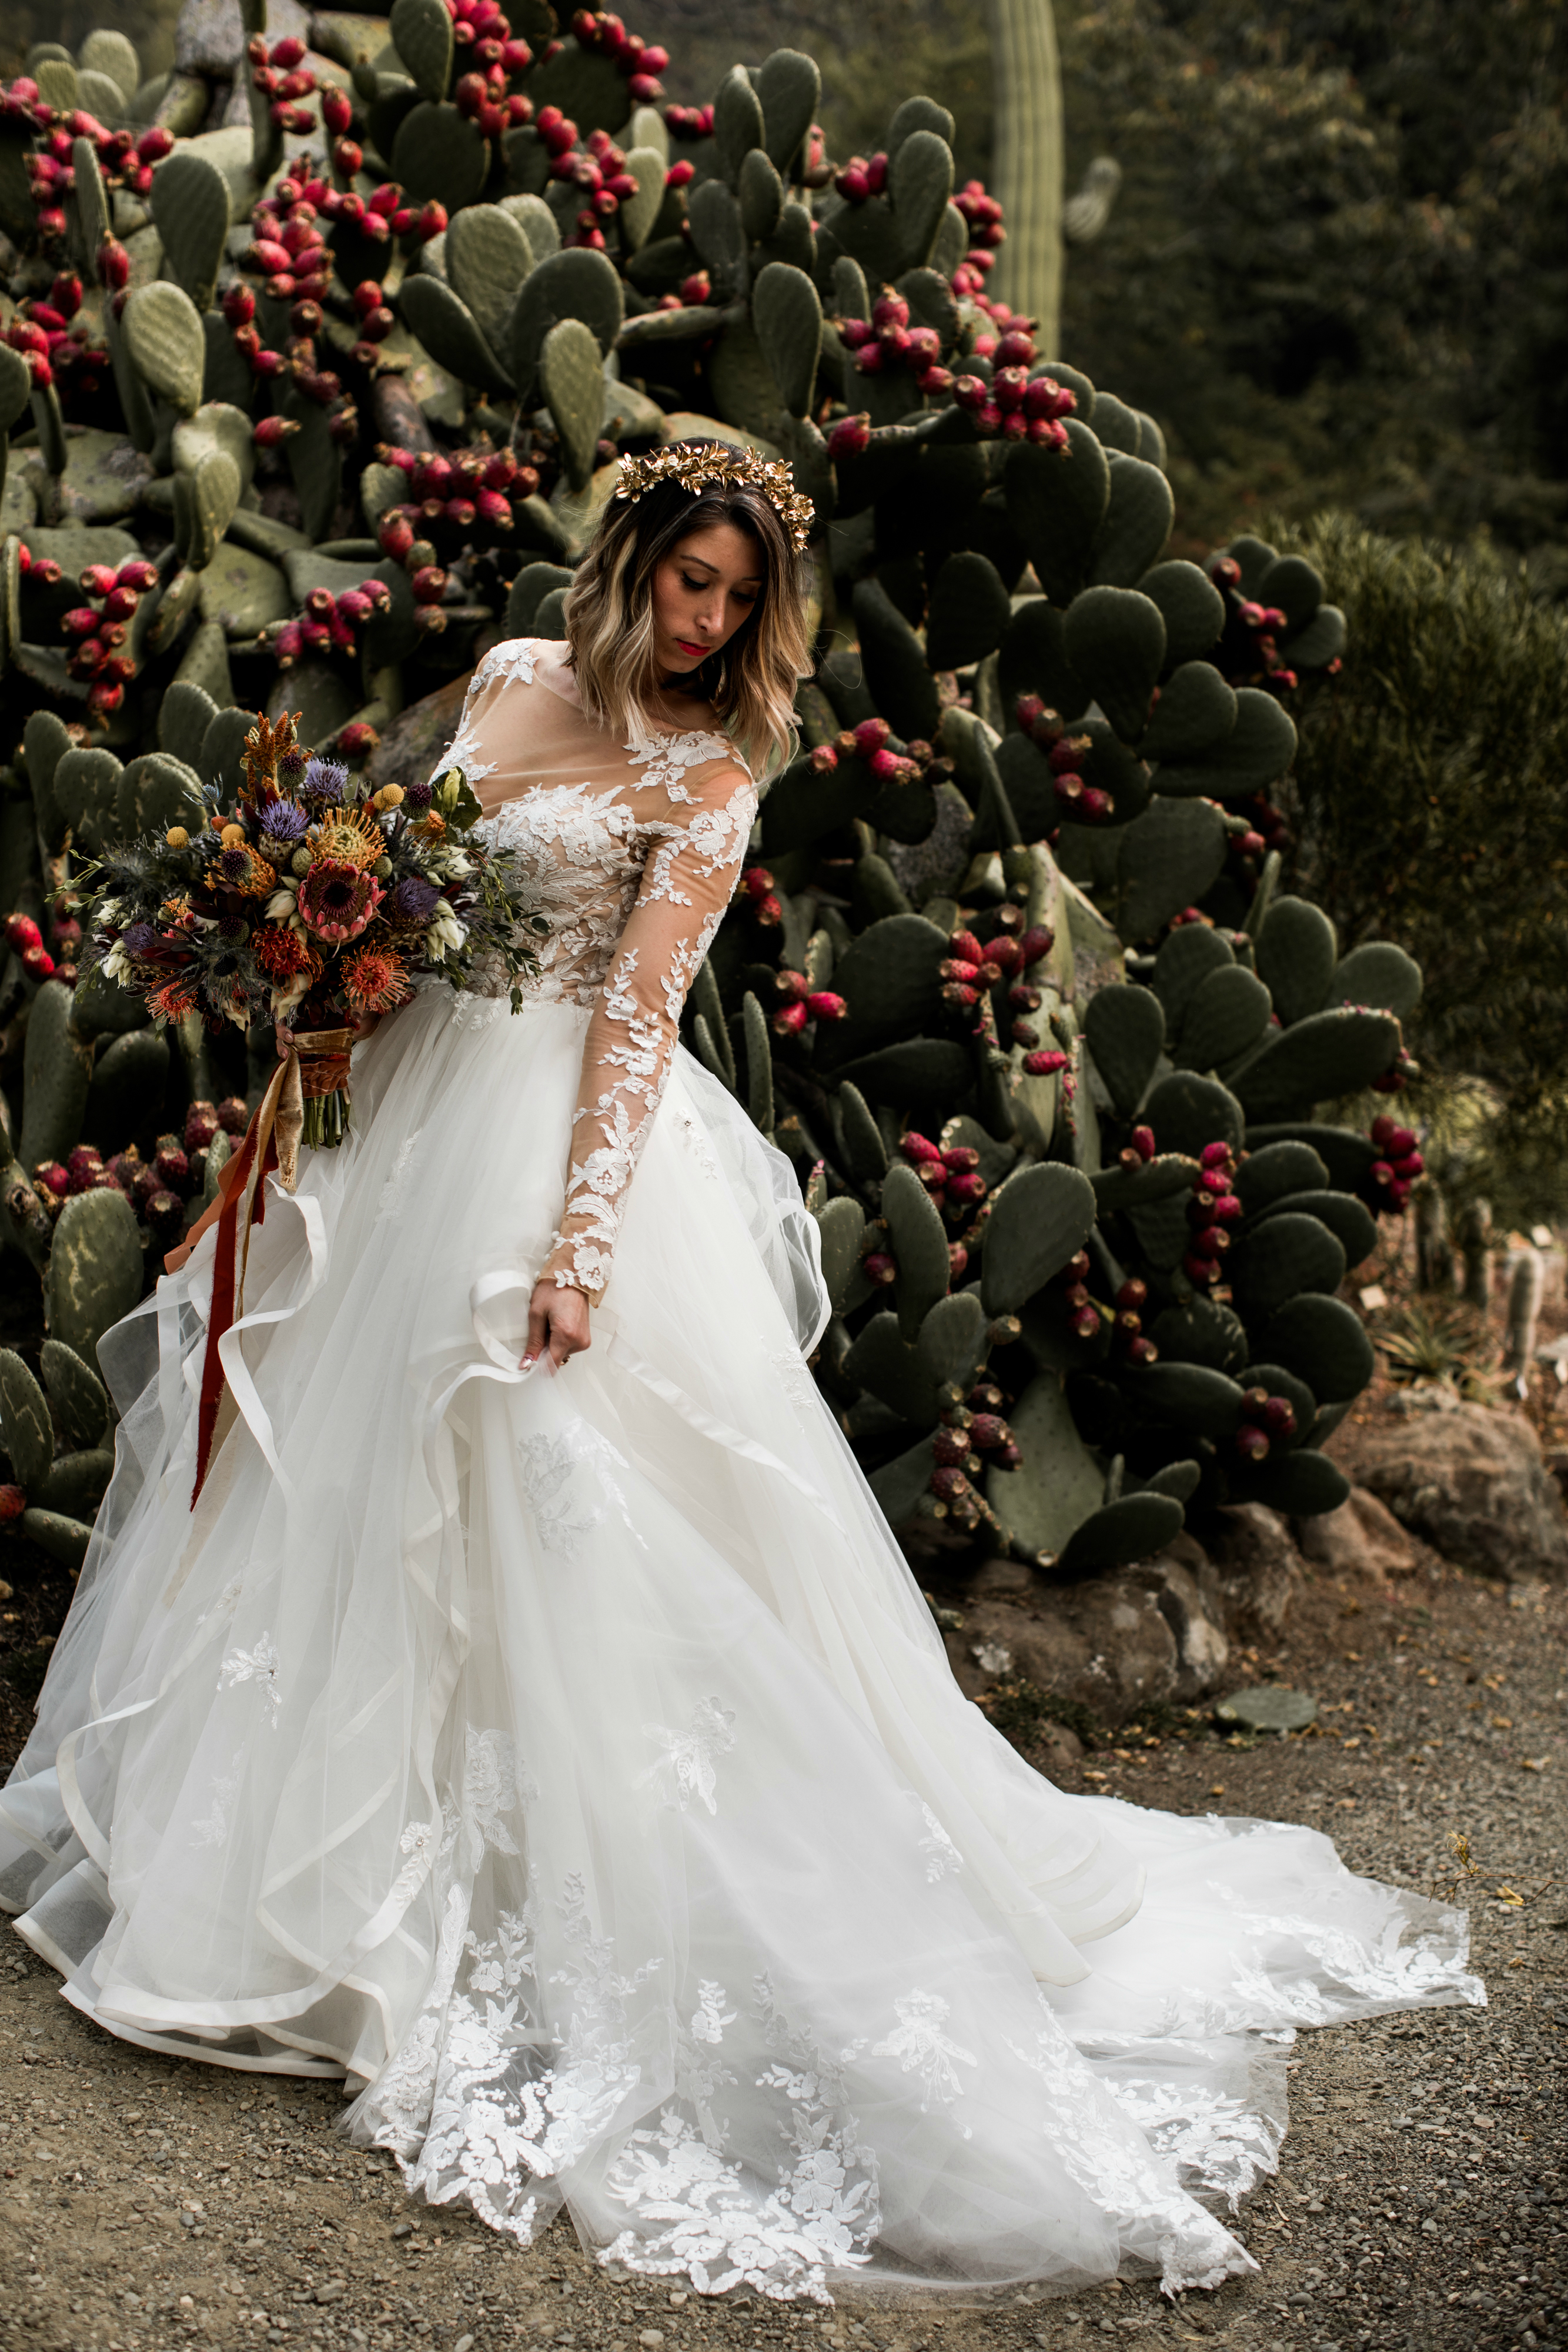 Bride are designing custom wedding dresses online with long scattered lace sleeves with Anomalie.